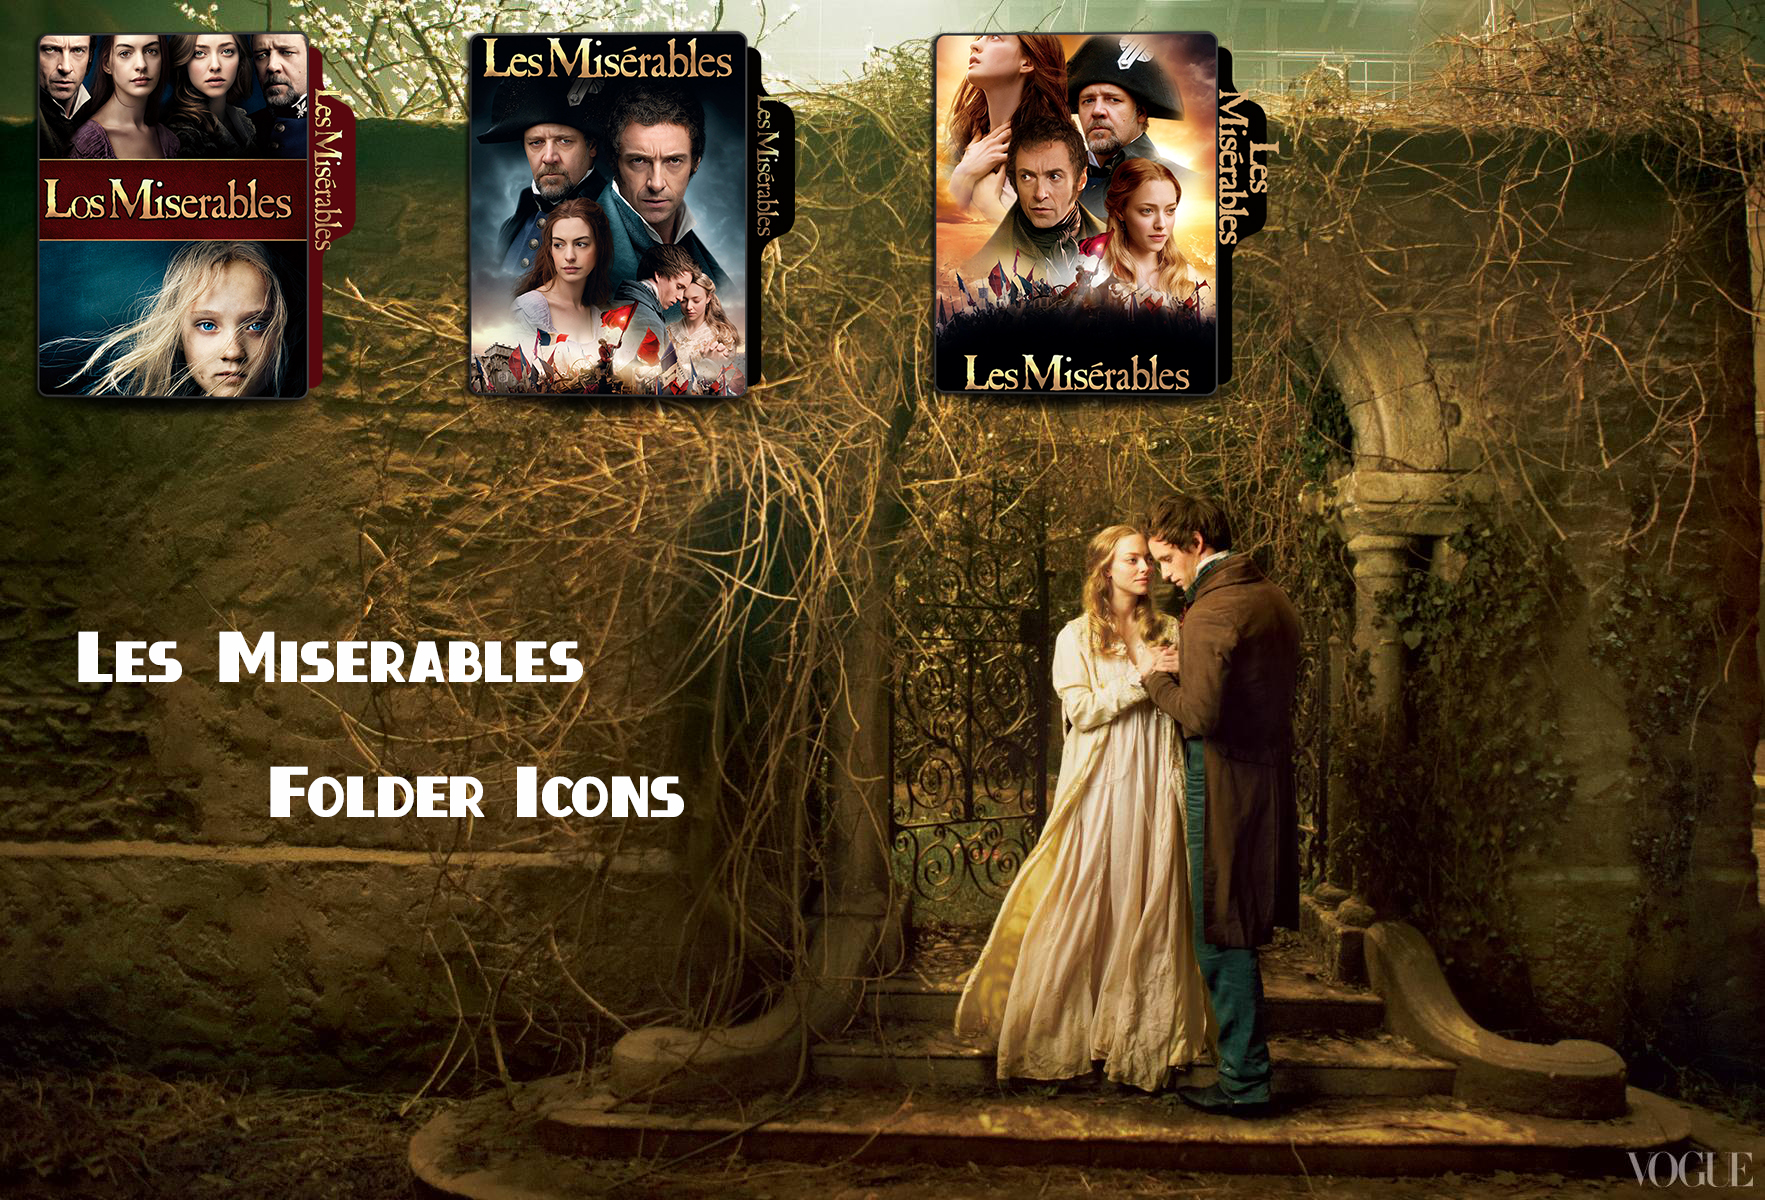 Les Miserables 2012 Folder Icons By Mesutisreal On Deviantart